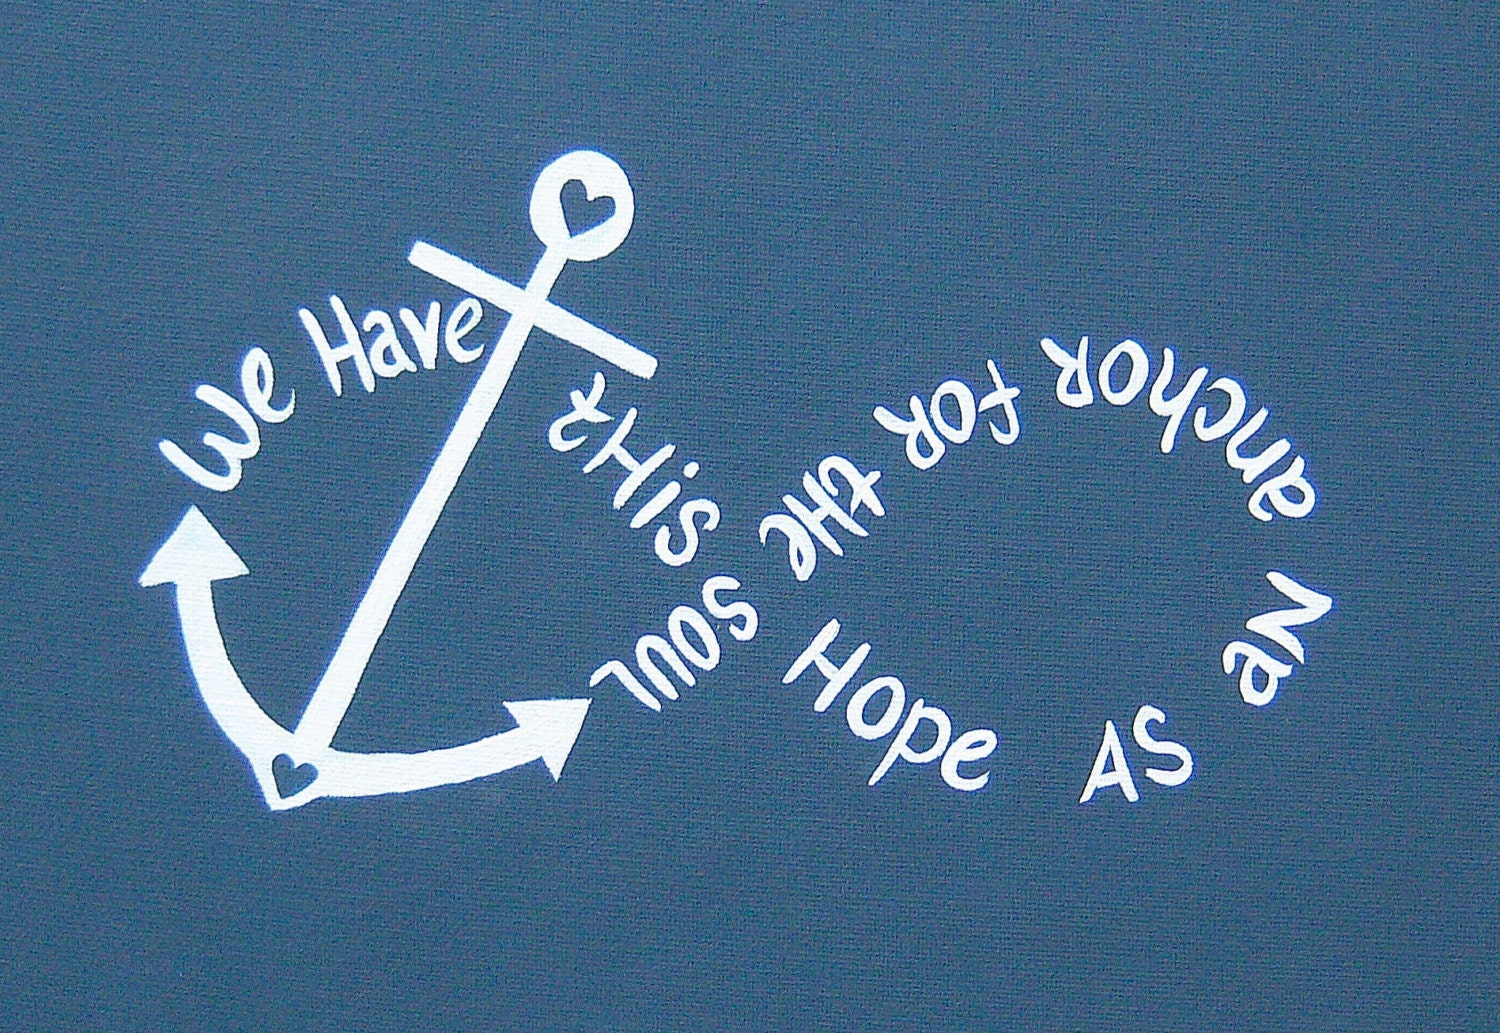 Cute Infinity Wallpaper: Canvas Painting Anchor Infinity We Have This Hope